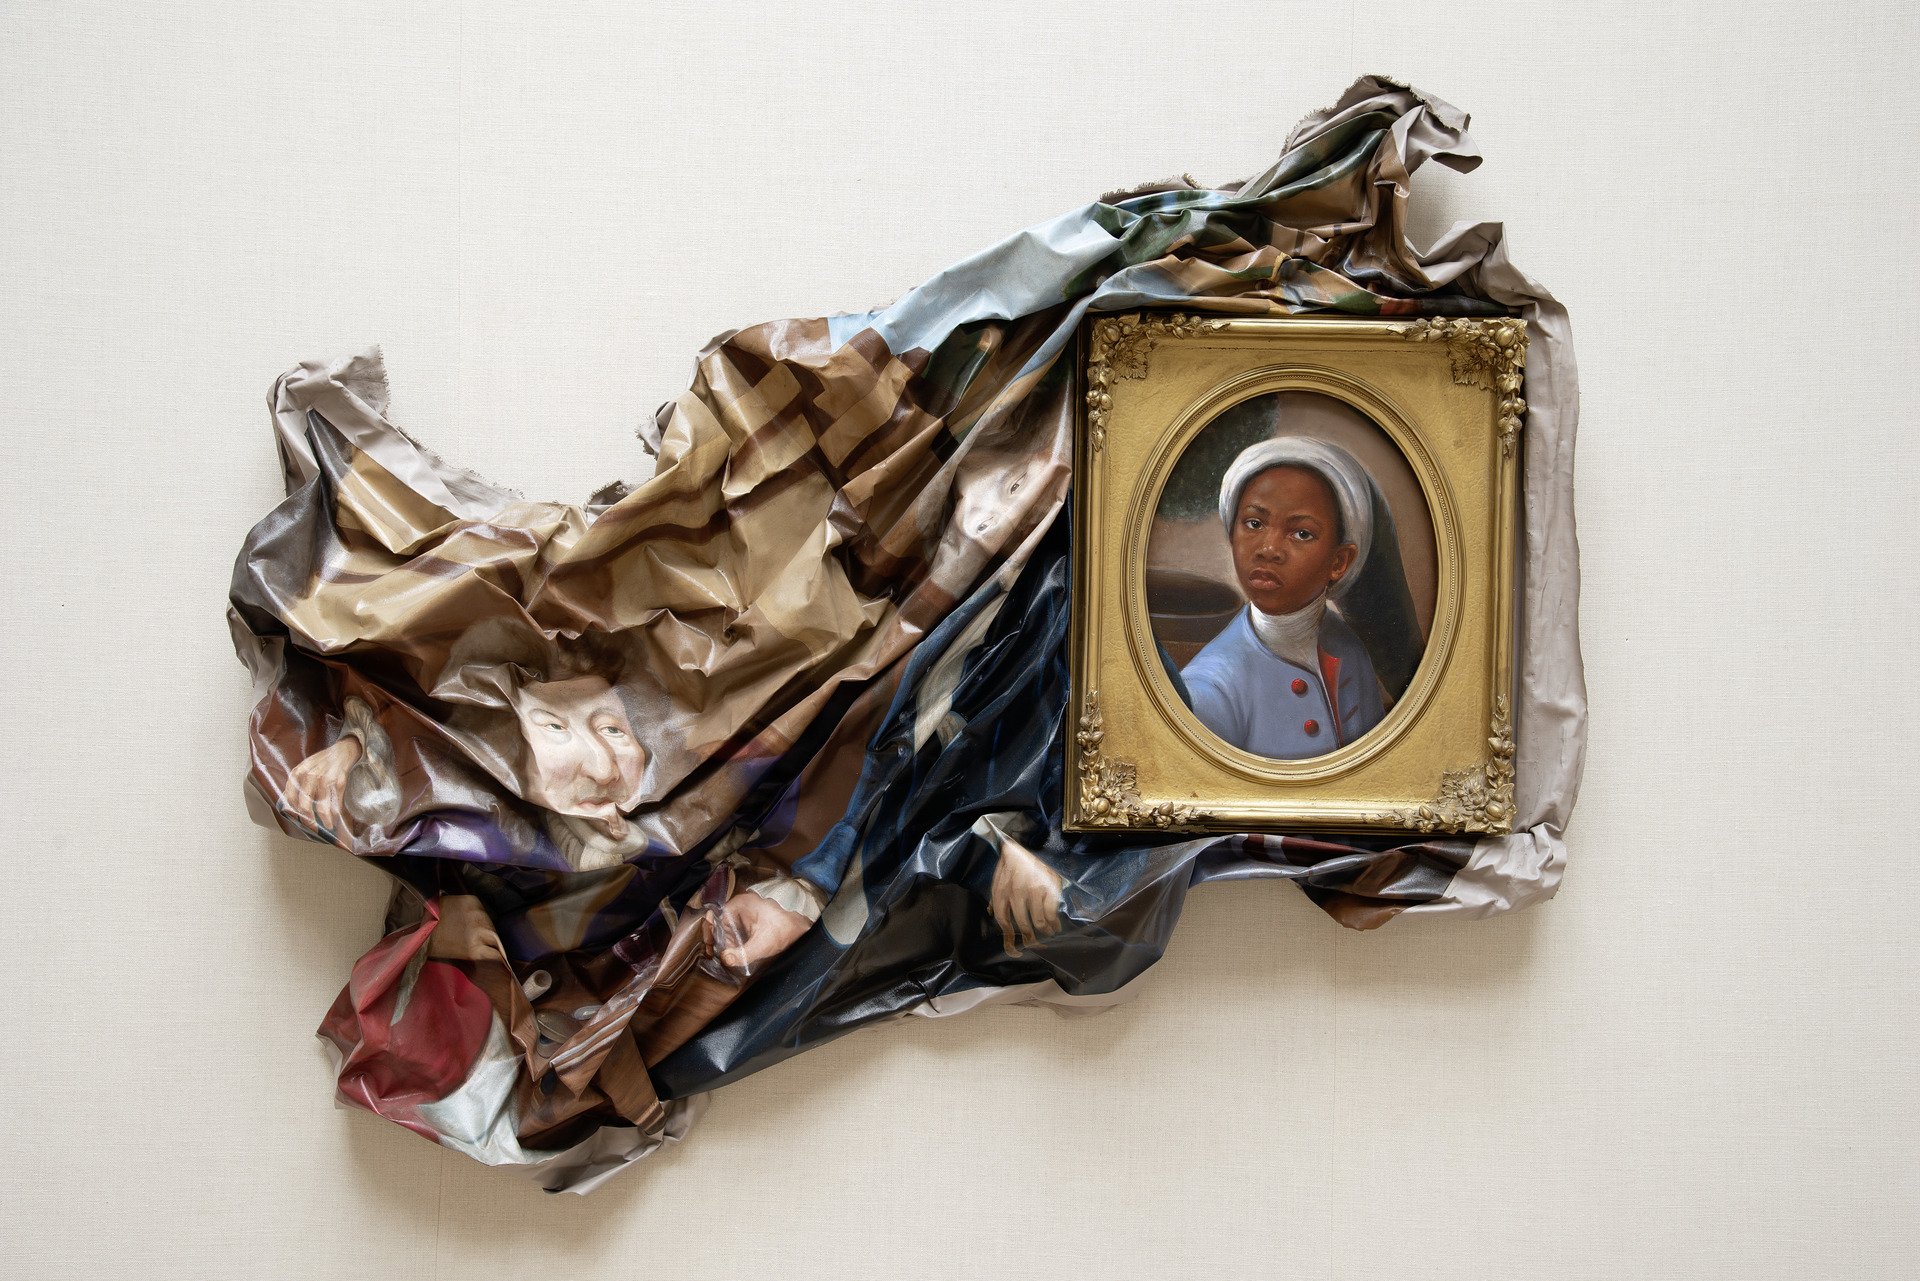 Titus Kaphar's Enough About You (2016) installed at the Yale Center for British Art, October 2020, on loan from the Collection of Arthur Lewis and Hau Nguyen, Courtesy of the artist, photo by Richard Caspole